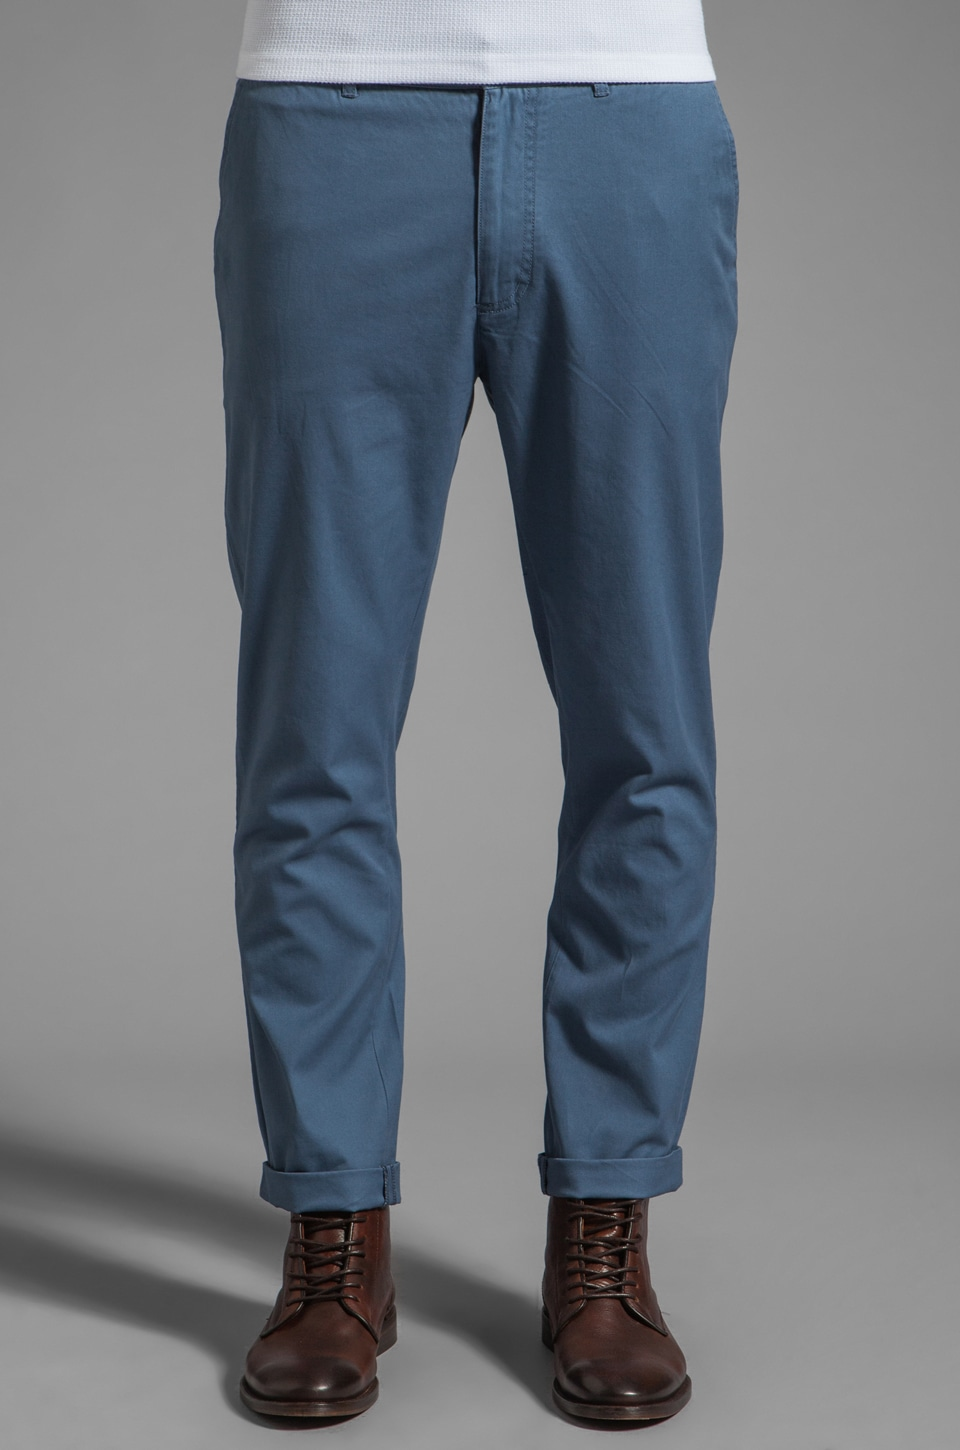 FARAH VINTAGE The Chester Twill Tailored Chino in Grey Blue